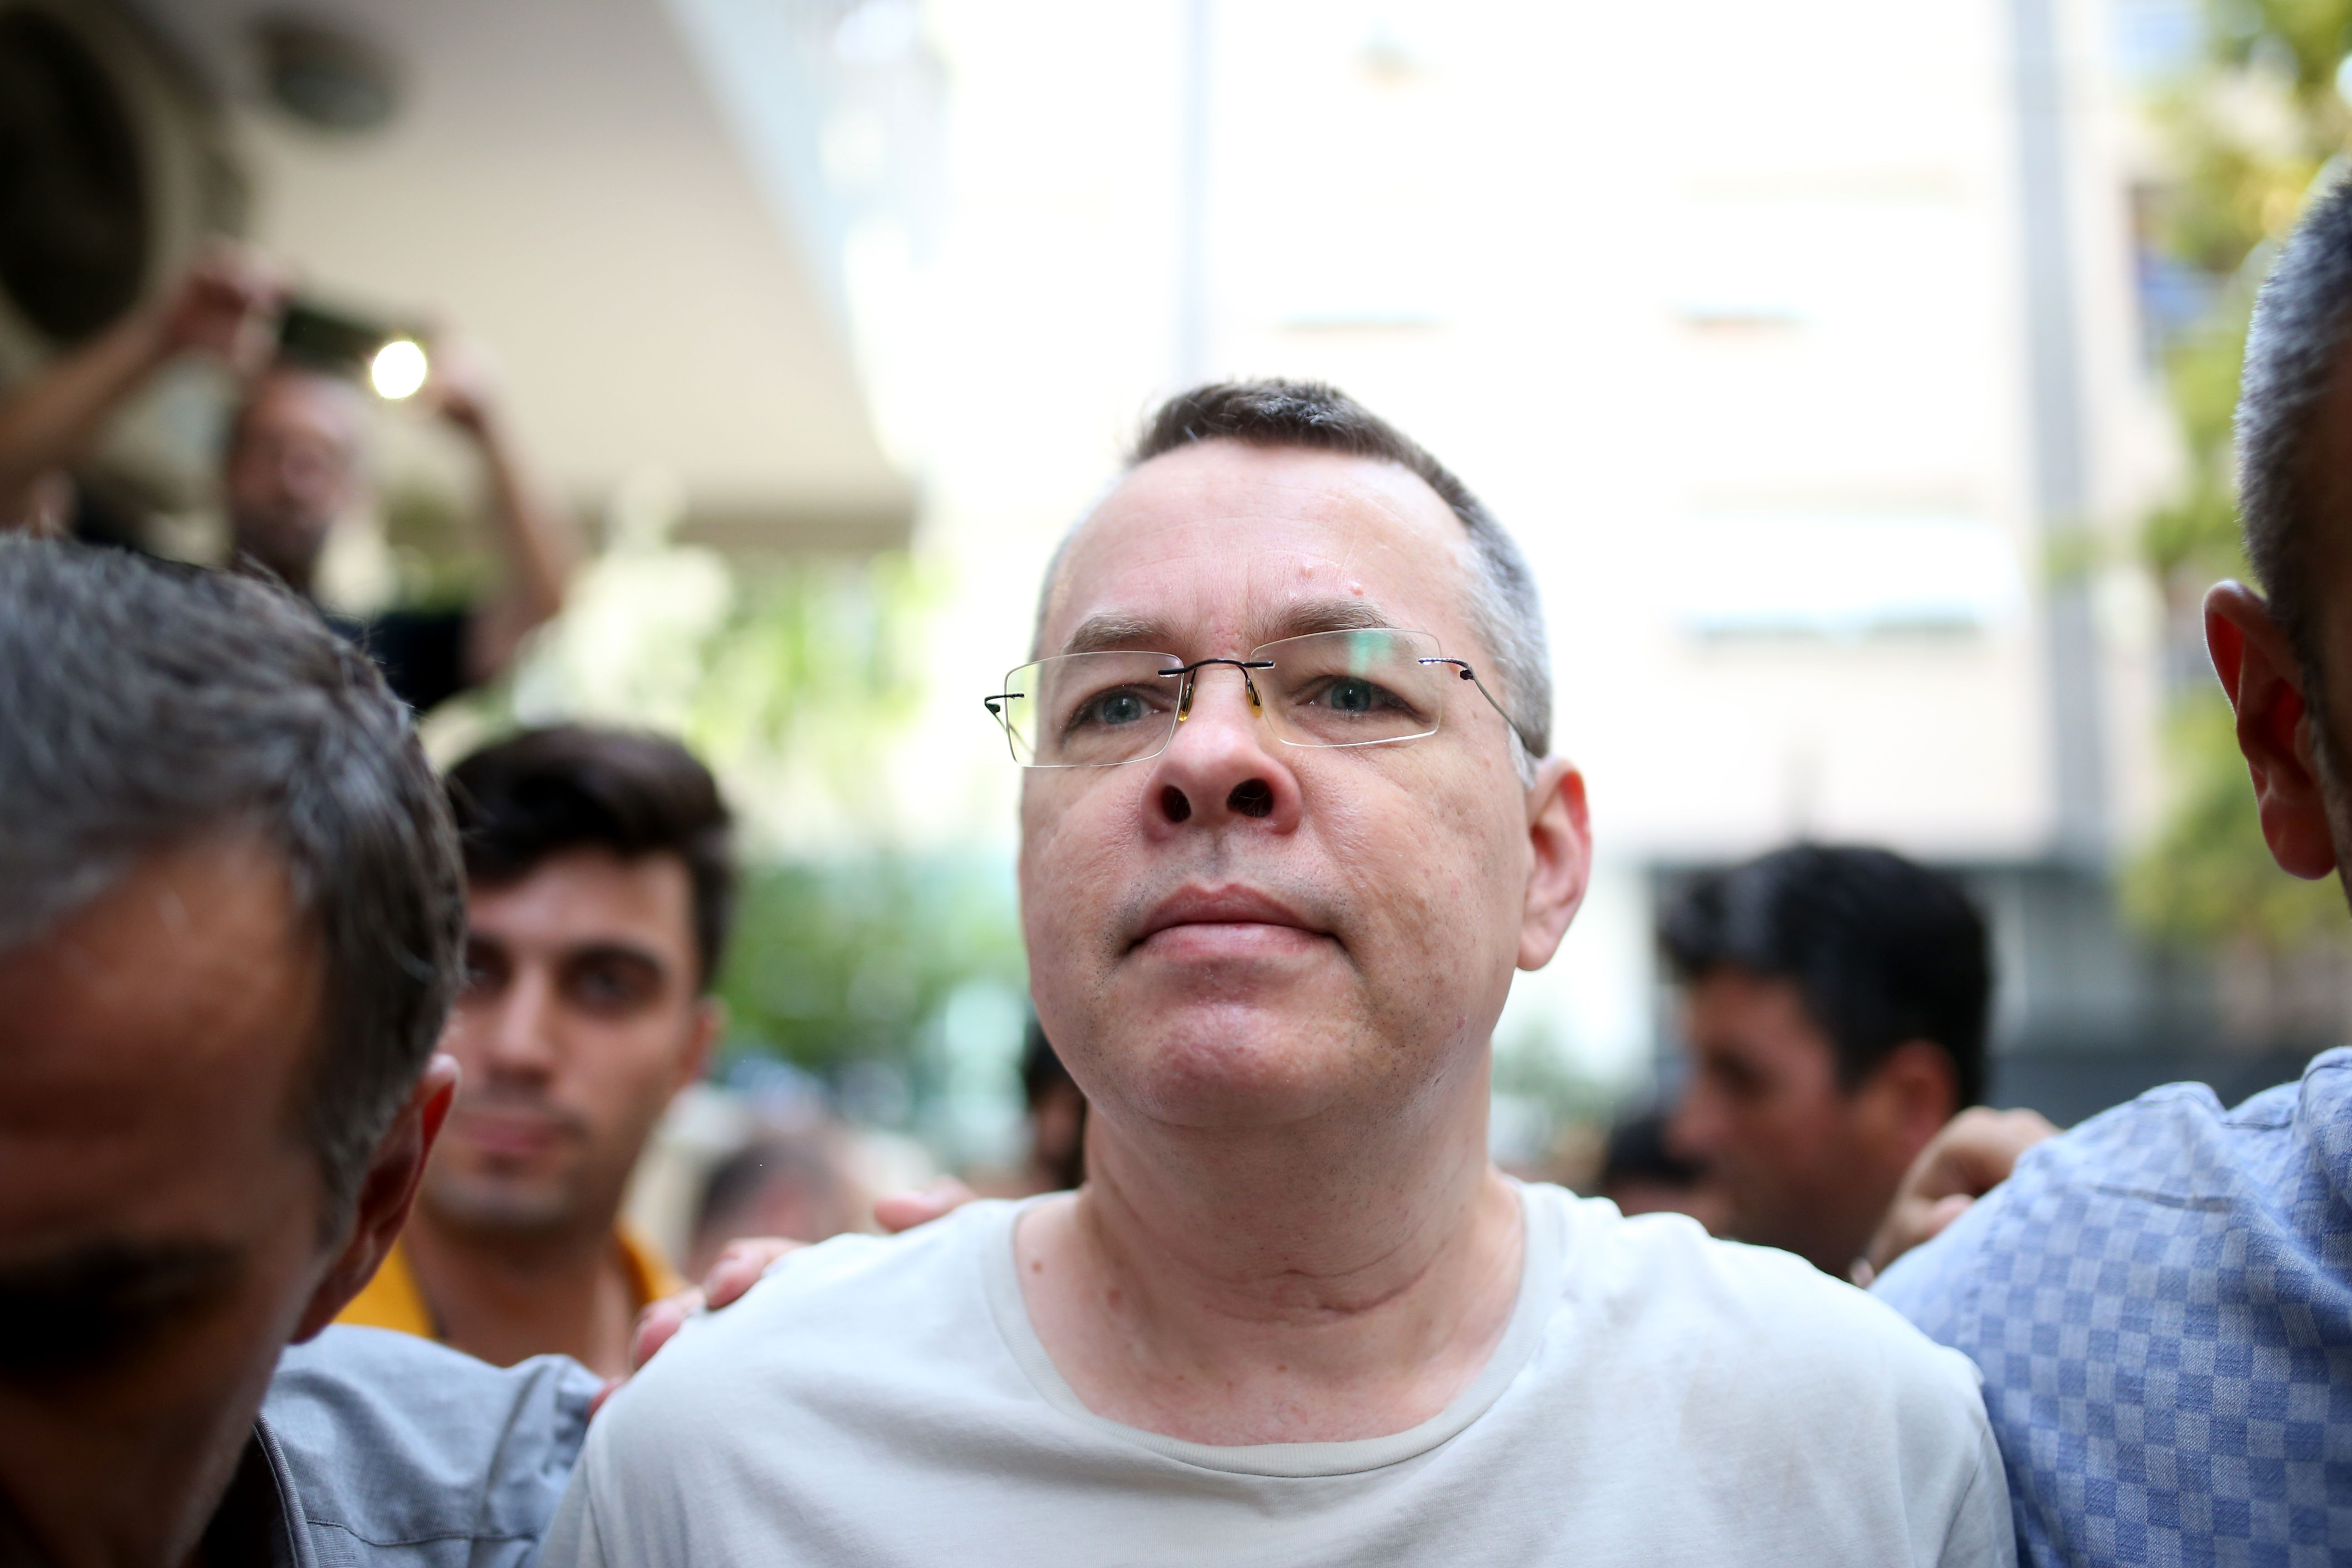 Pastor Andrew Brunson, held hostage by Turkey for two years, was finally released to US custody on October 12, 2018.